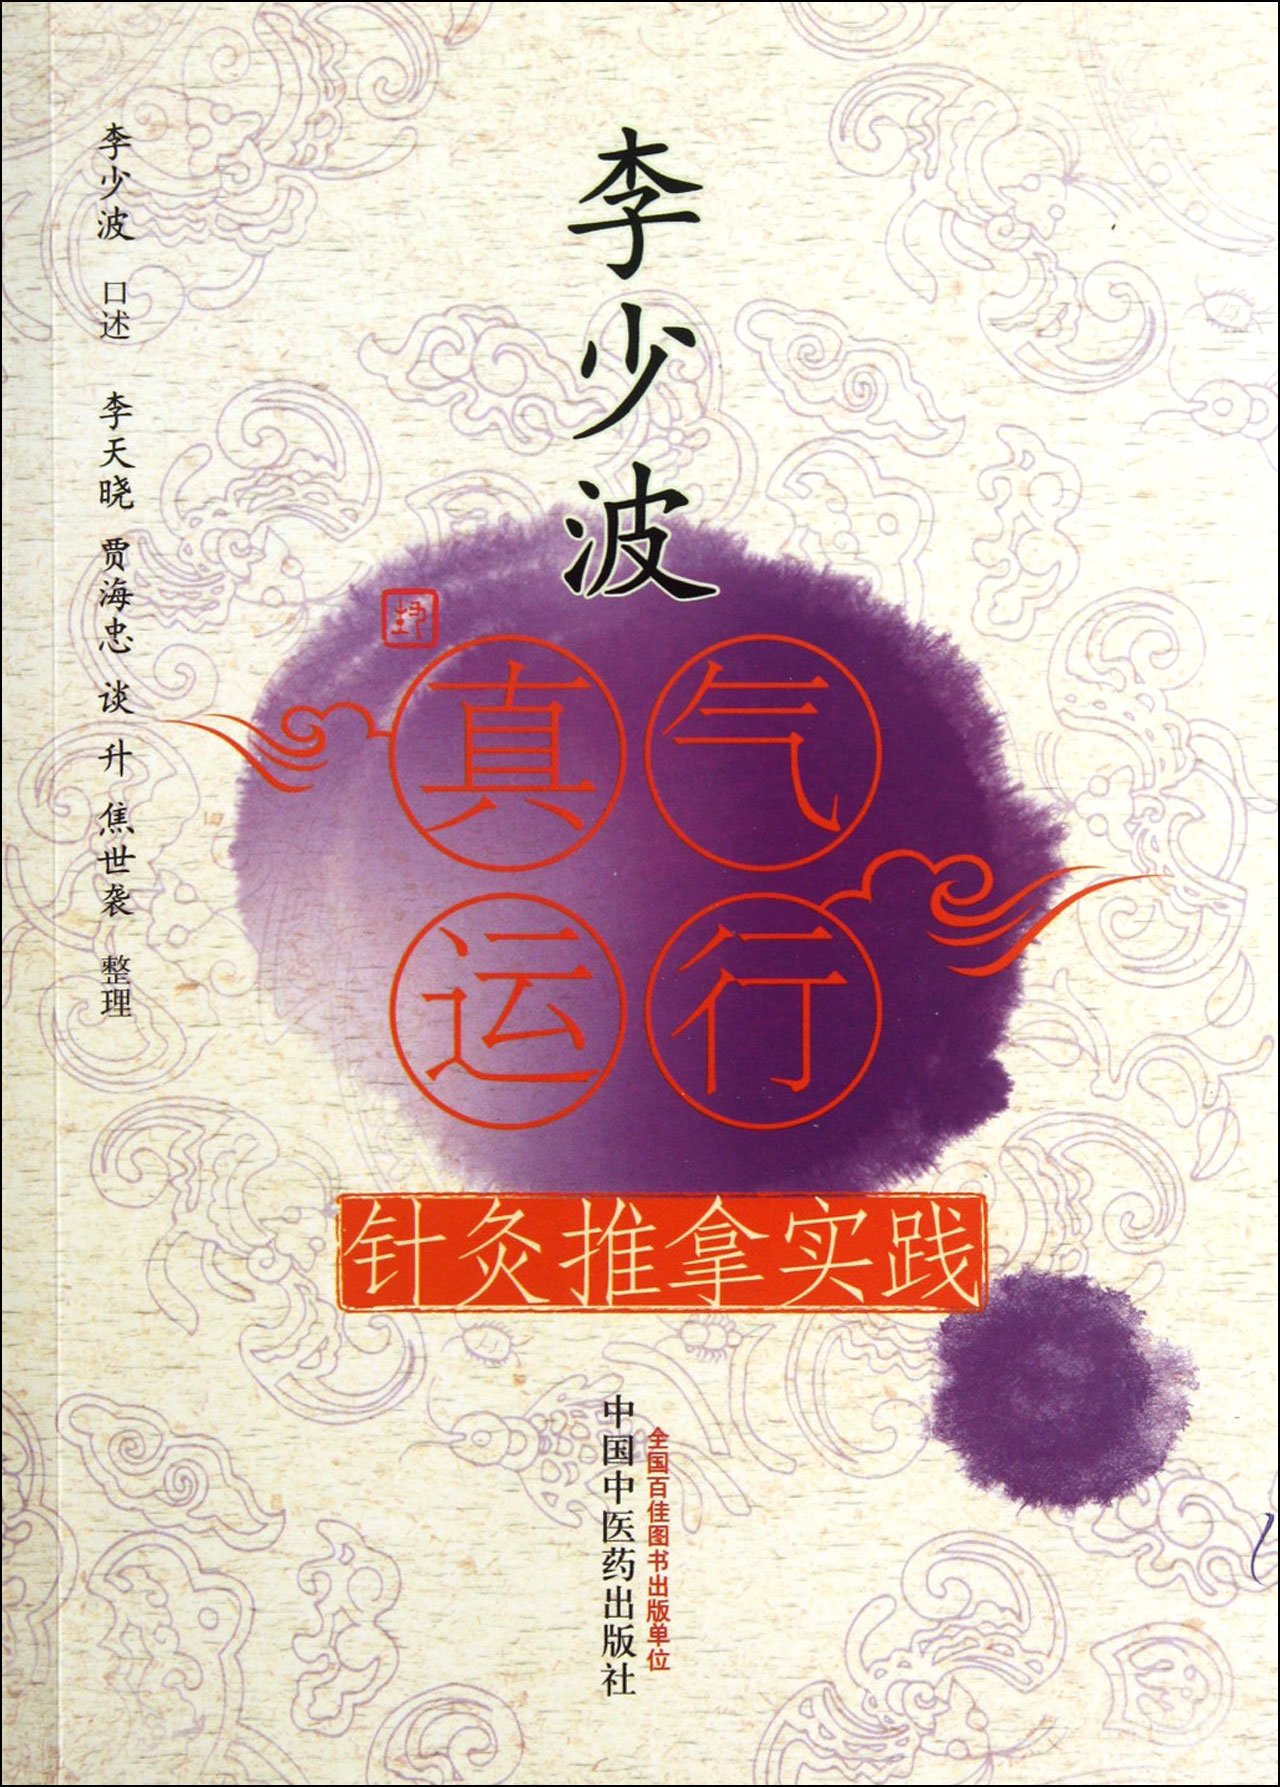 Li Shaobos Qi Operation Method--Practice Of Acupuncture And Massage (Chinese Edition)